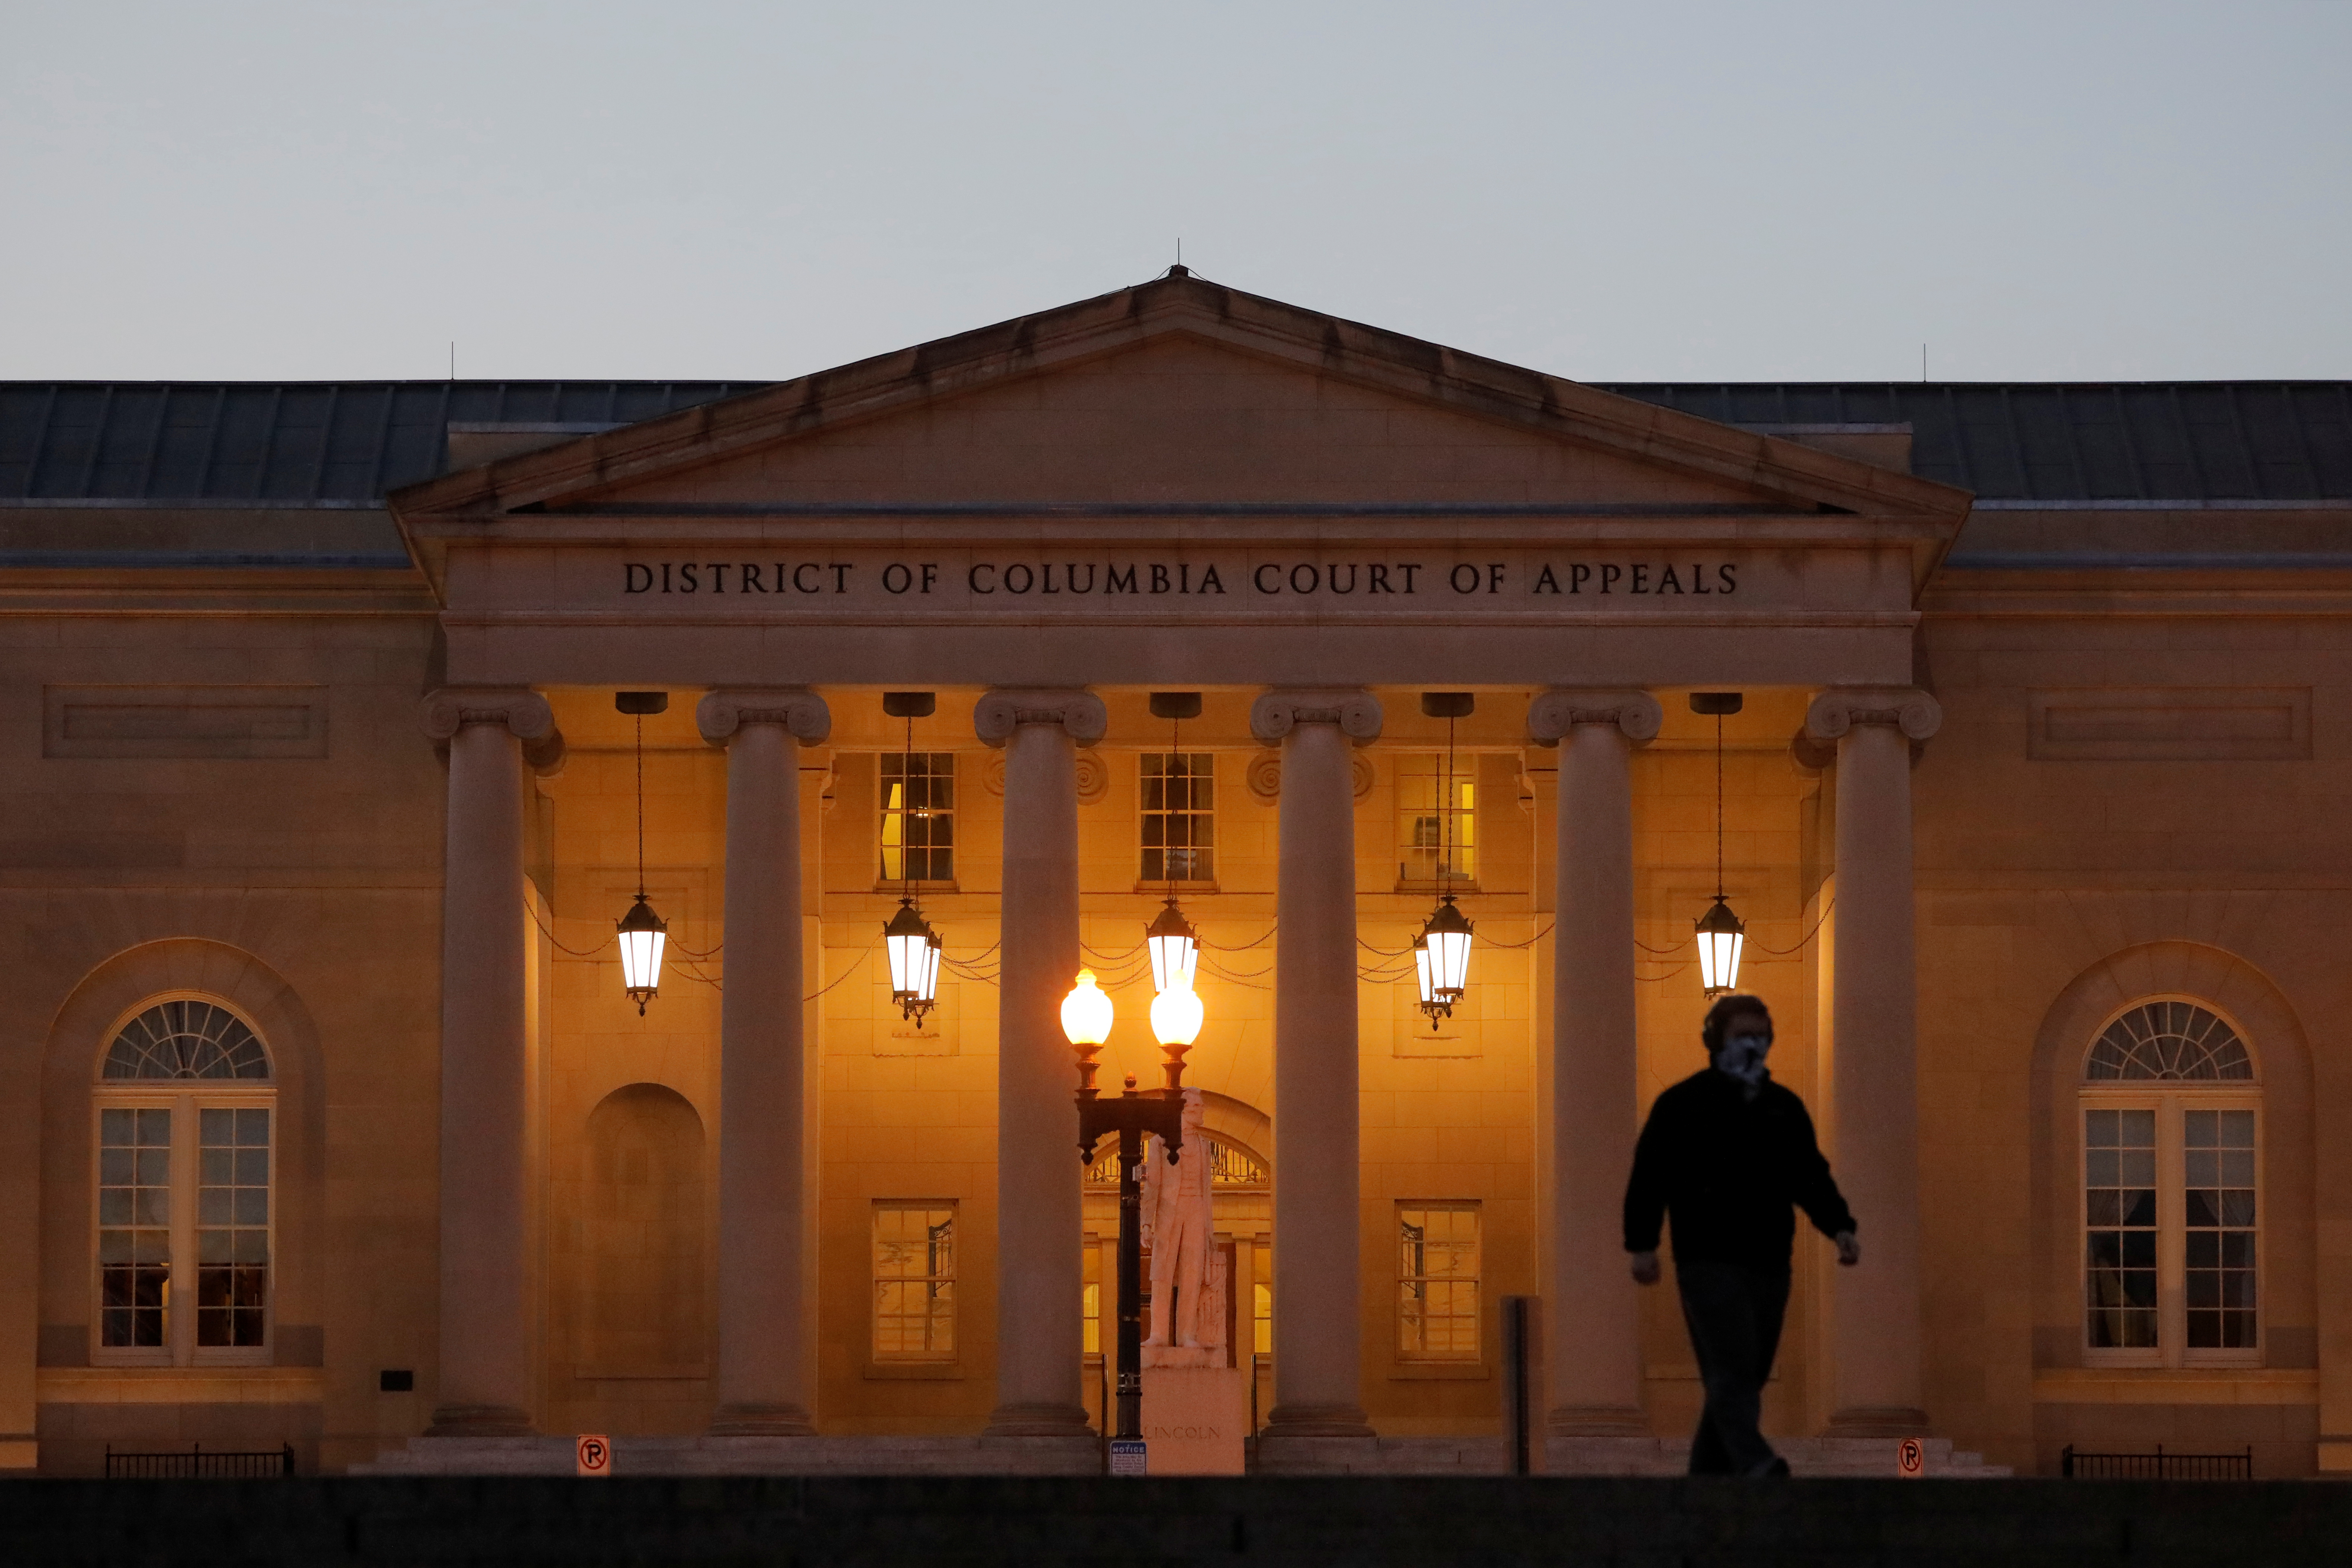 A person walks in front of the District of Columbia Court of Appeals in Washington, D.C. REUTERS/Andrew Kelly